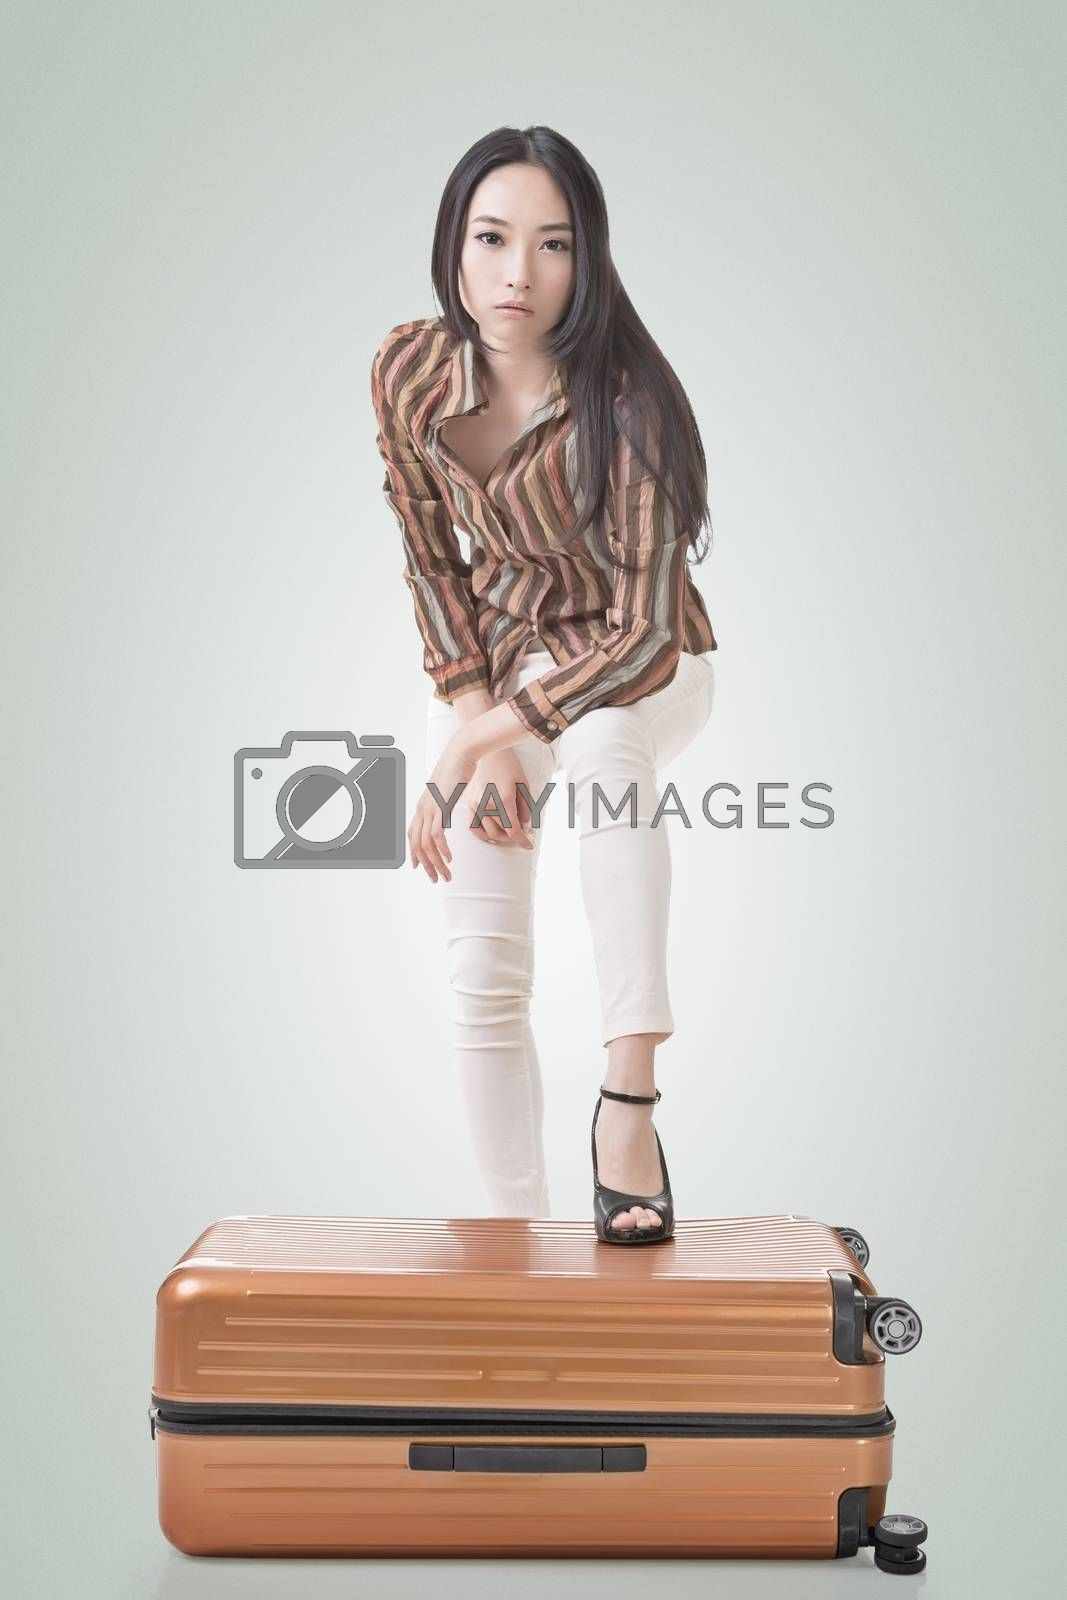 Modern Asian woman stand on a luggage, full length portrait on white background.